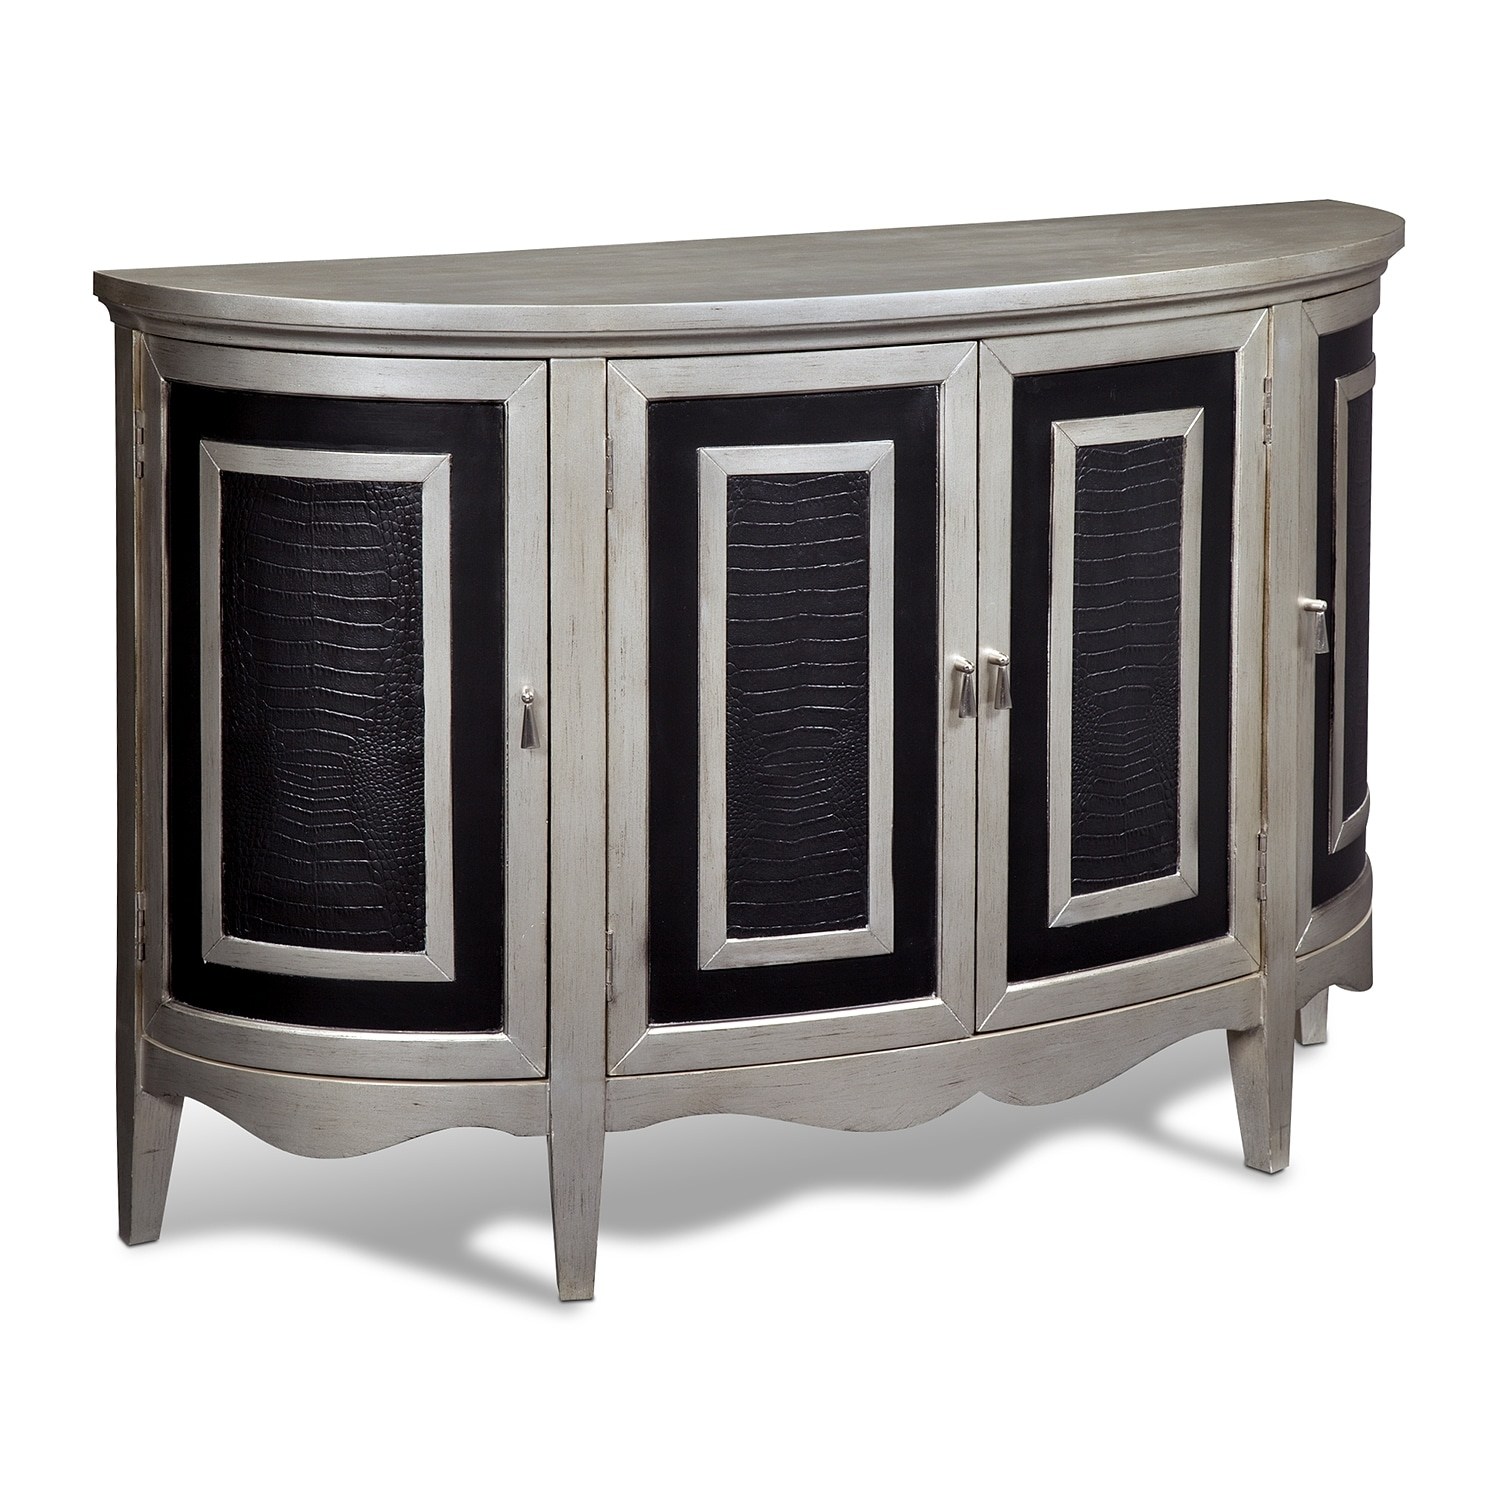 painted accent furniture hand chest features blue green hollywood pieces door console value city tables porch side table small with drawers ashley sofa fretwork battery operated